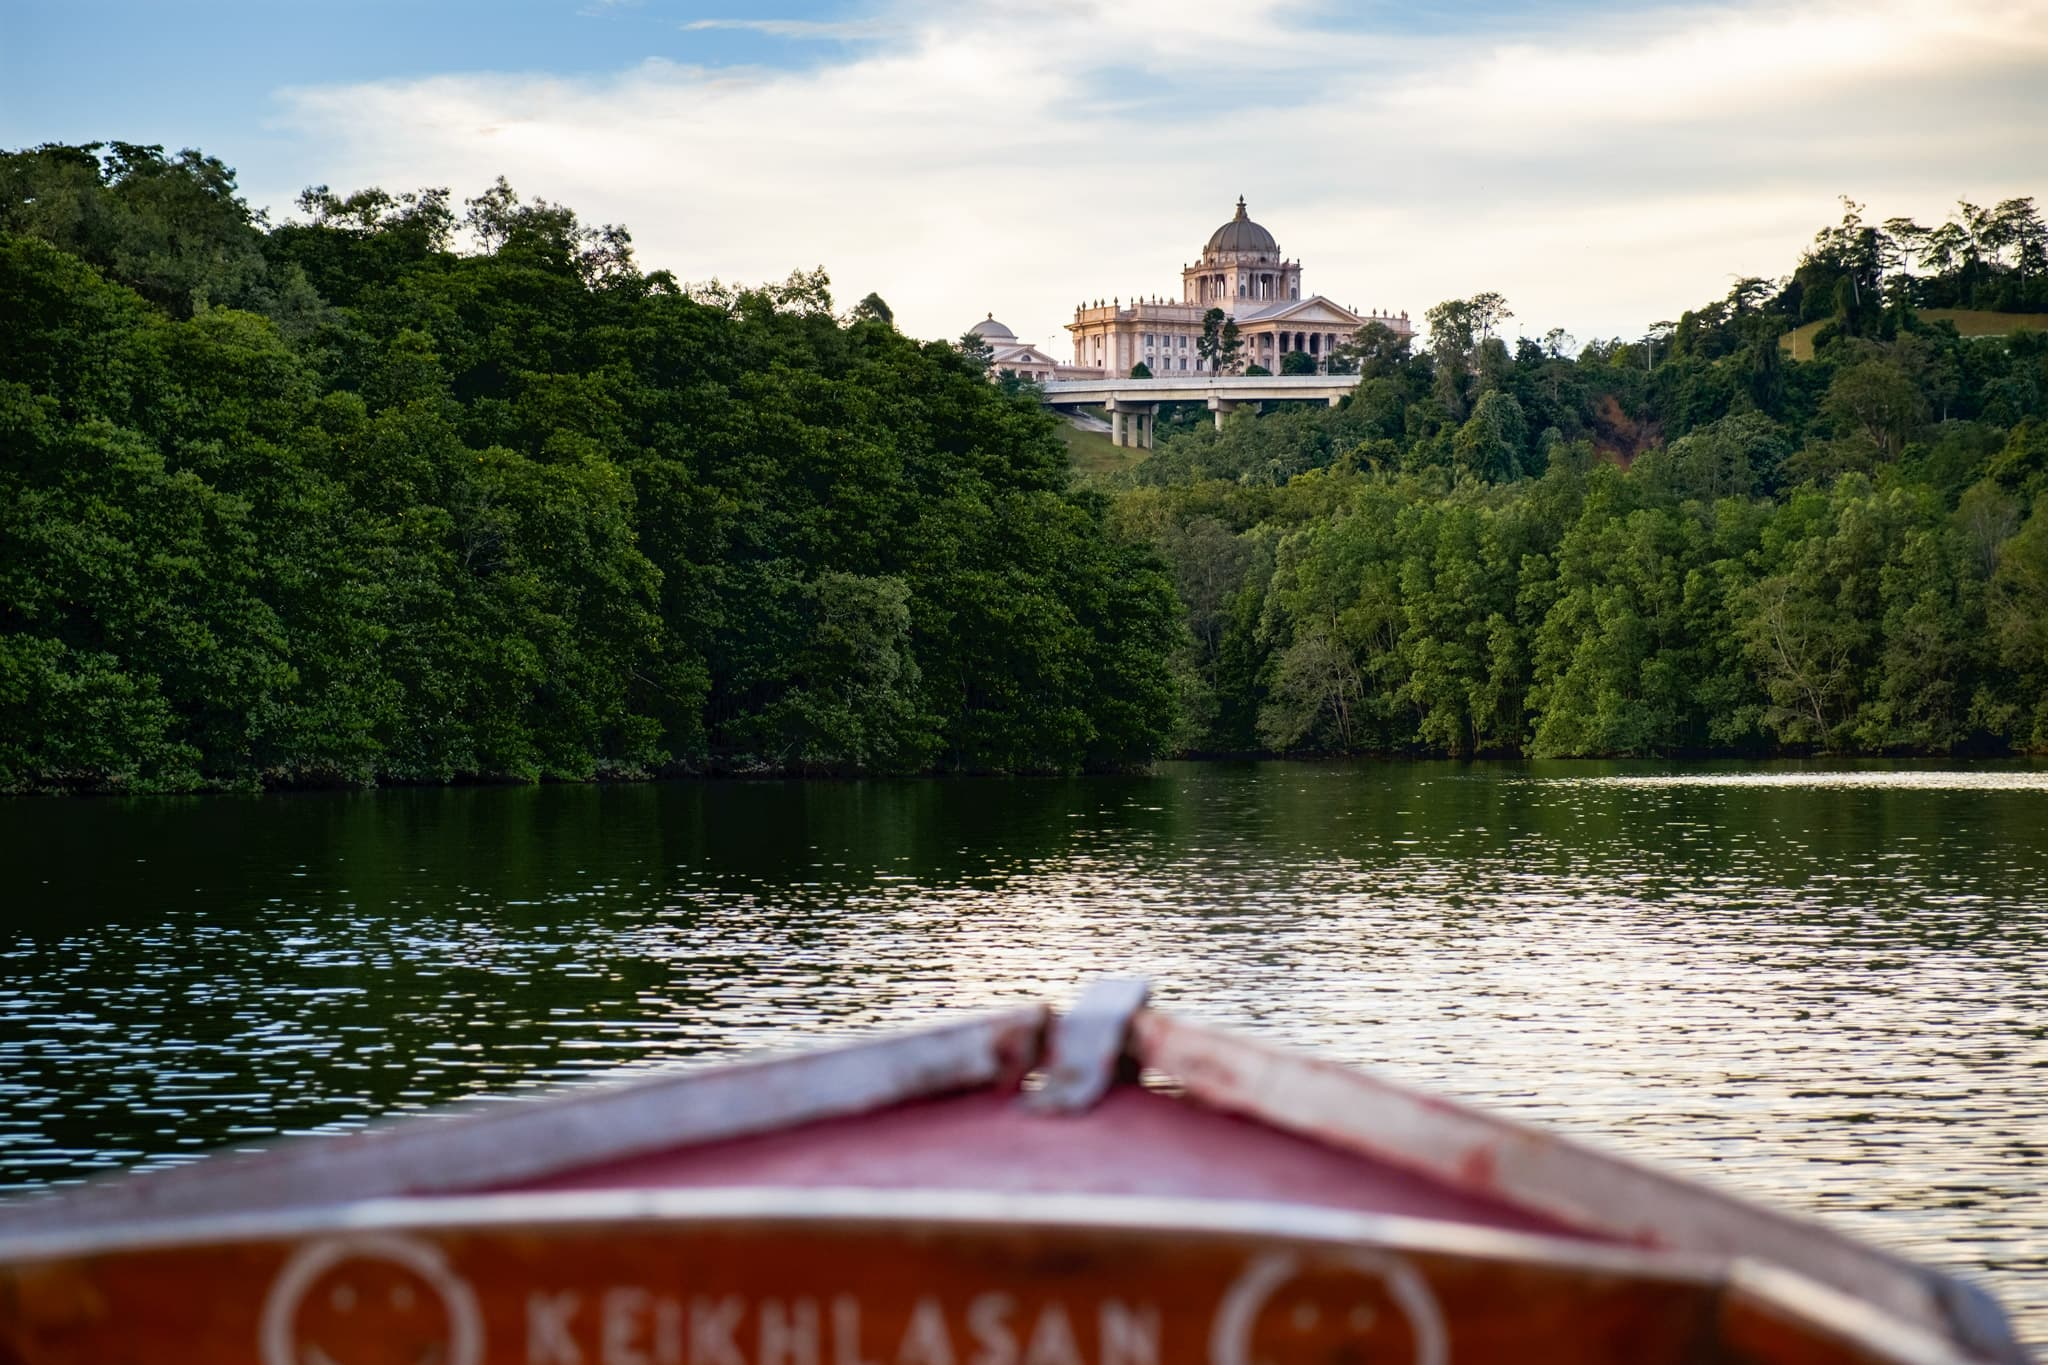 A view behind Istana Nurul Iman, the new palace for the crown prince, seen from the Brunei River in Bandar Seri Begawan, Brunei.